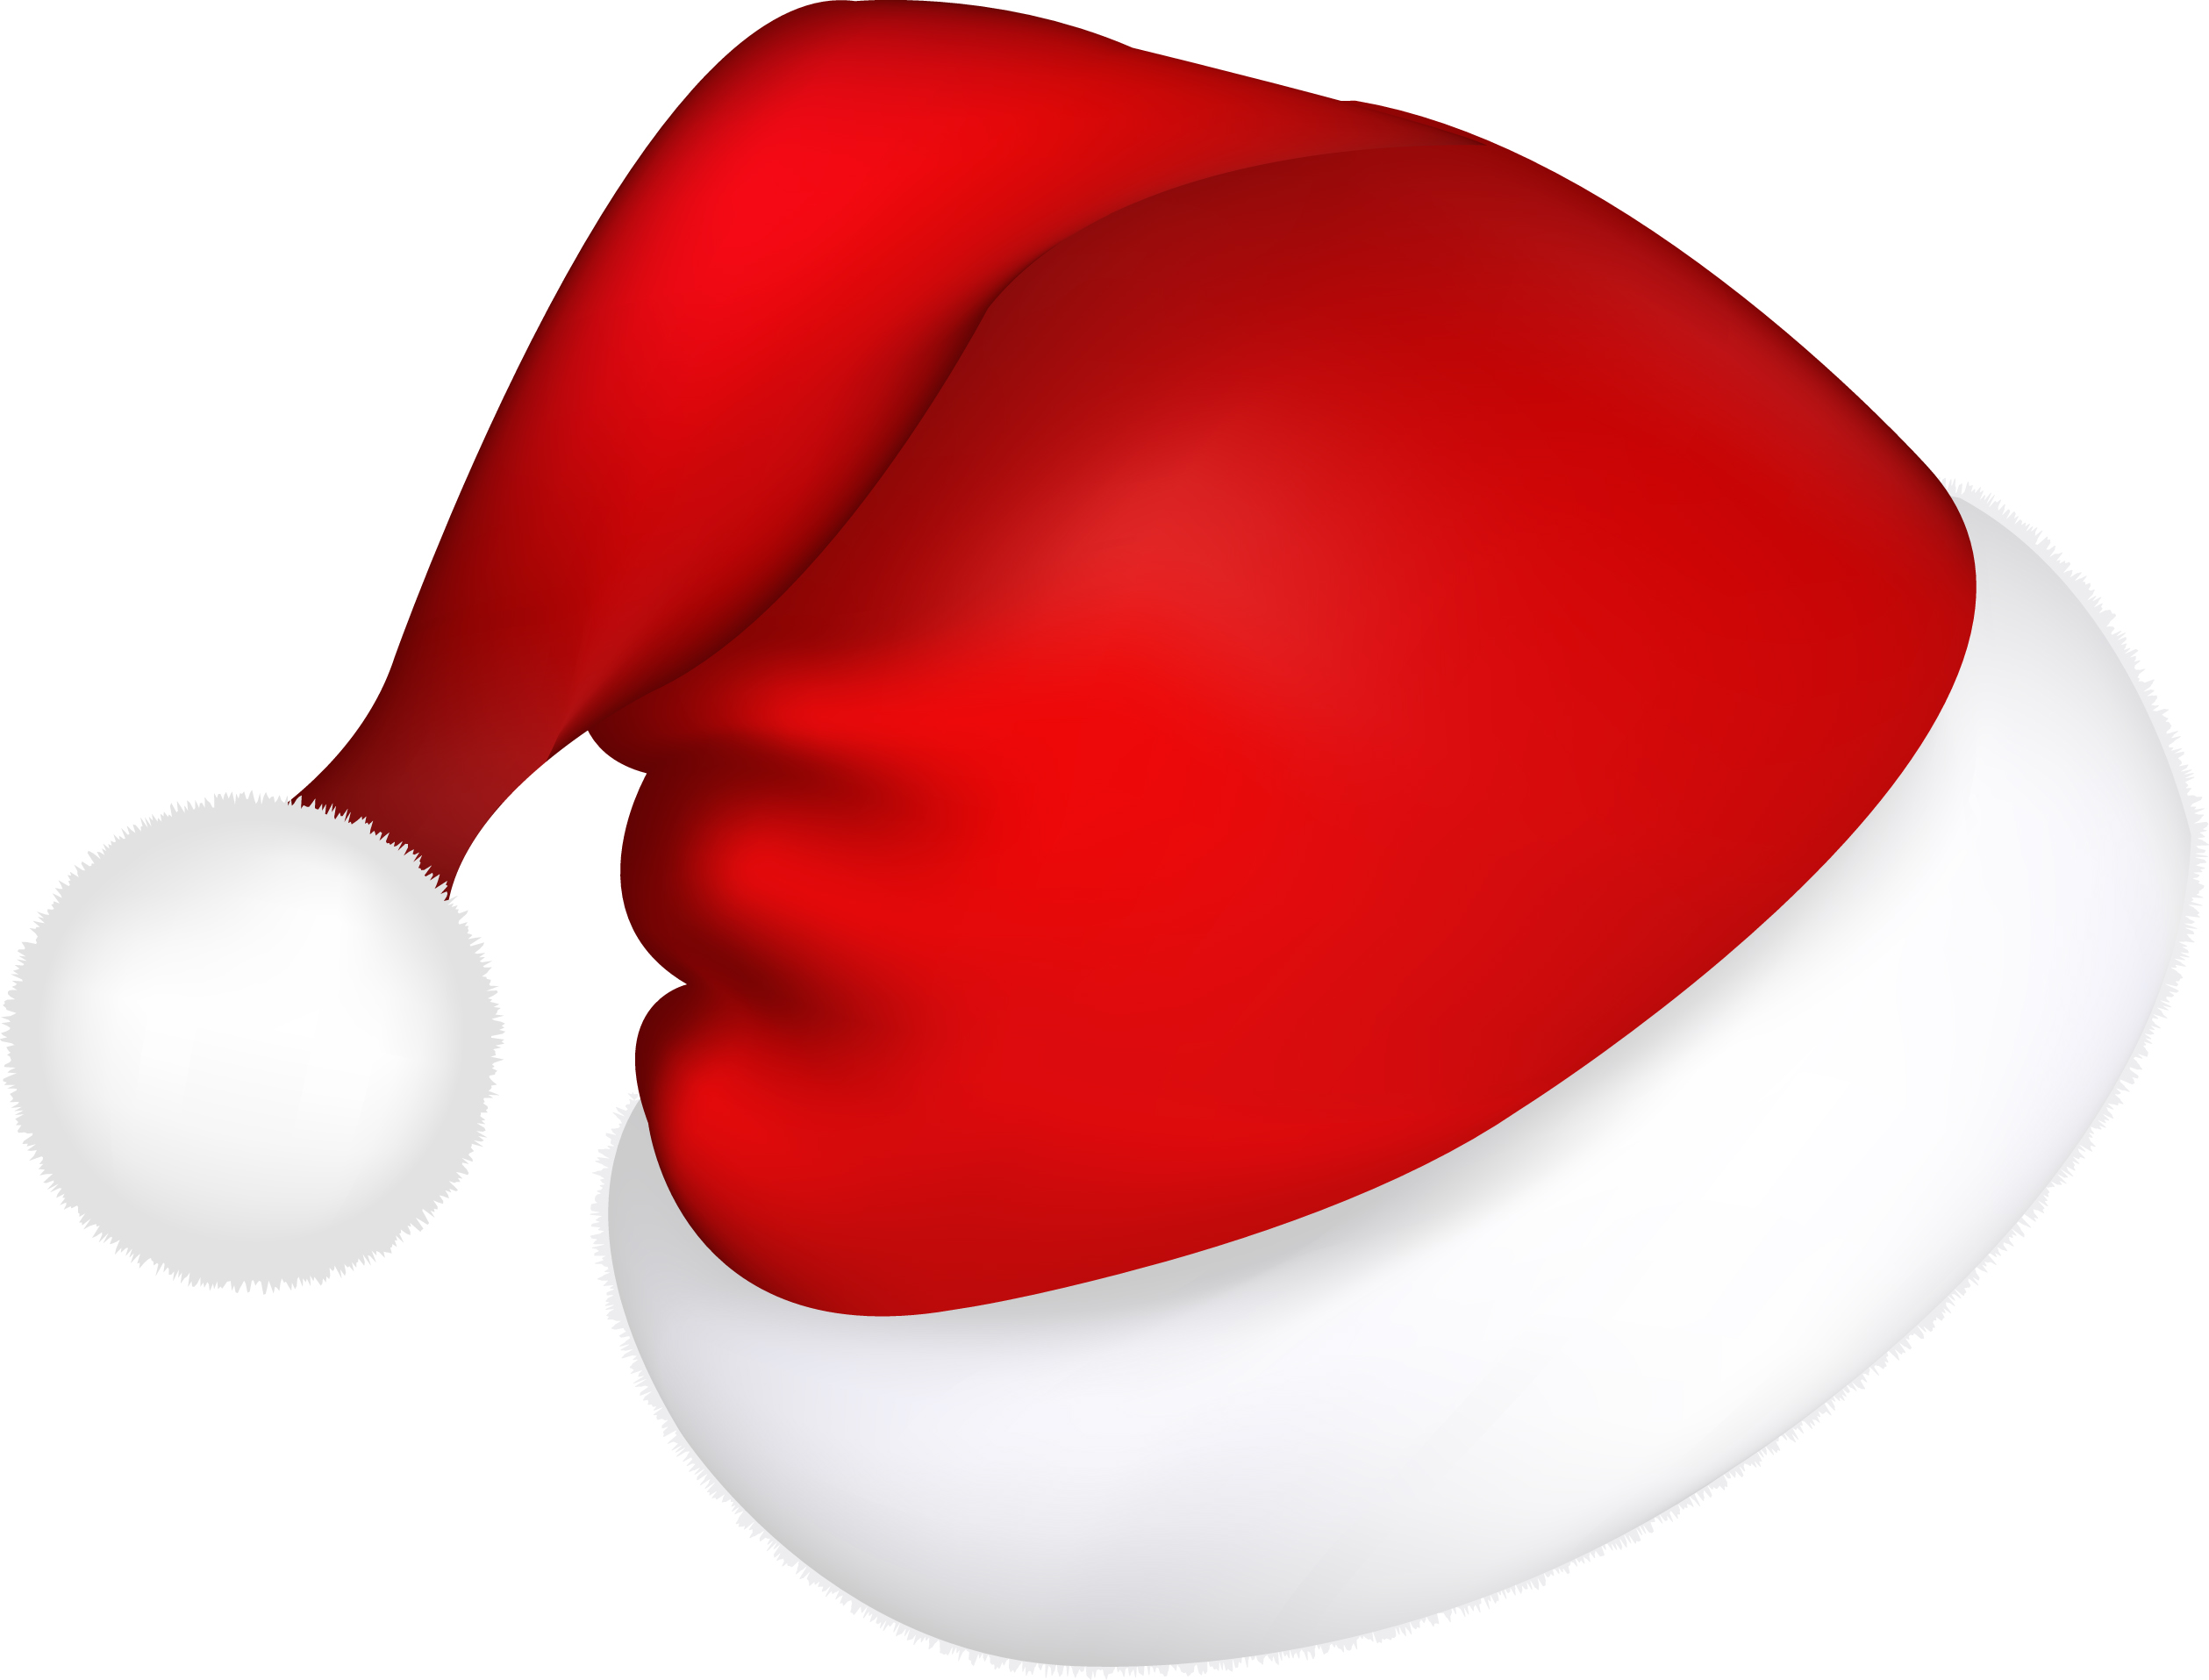 a0a09cafe942a 2518x1915 Christmas Hat Clipart